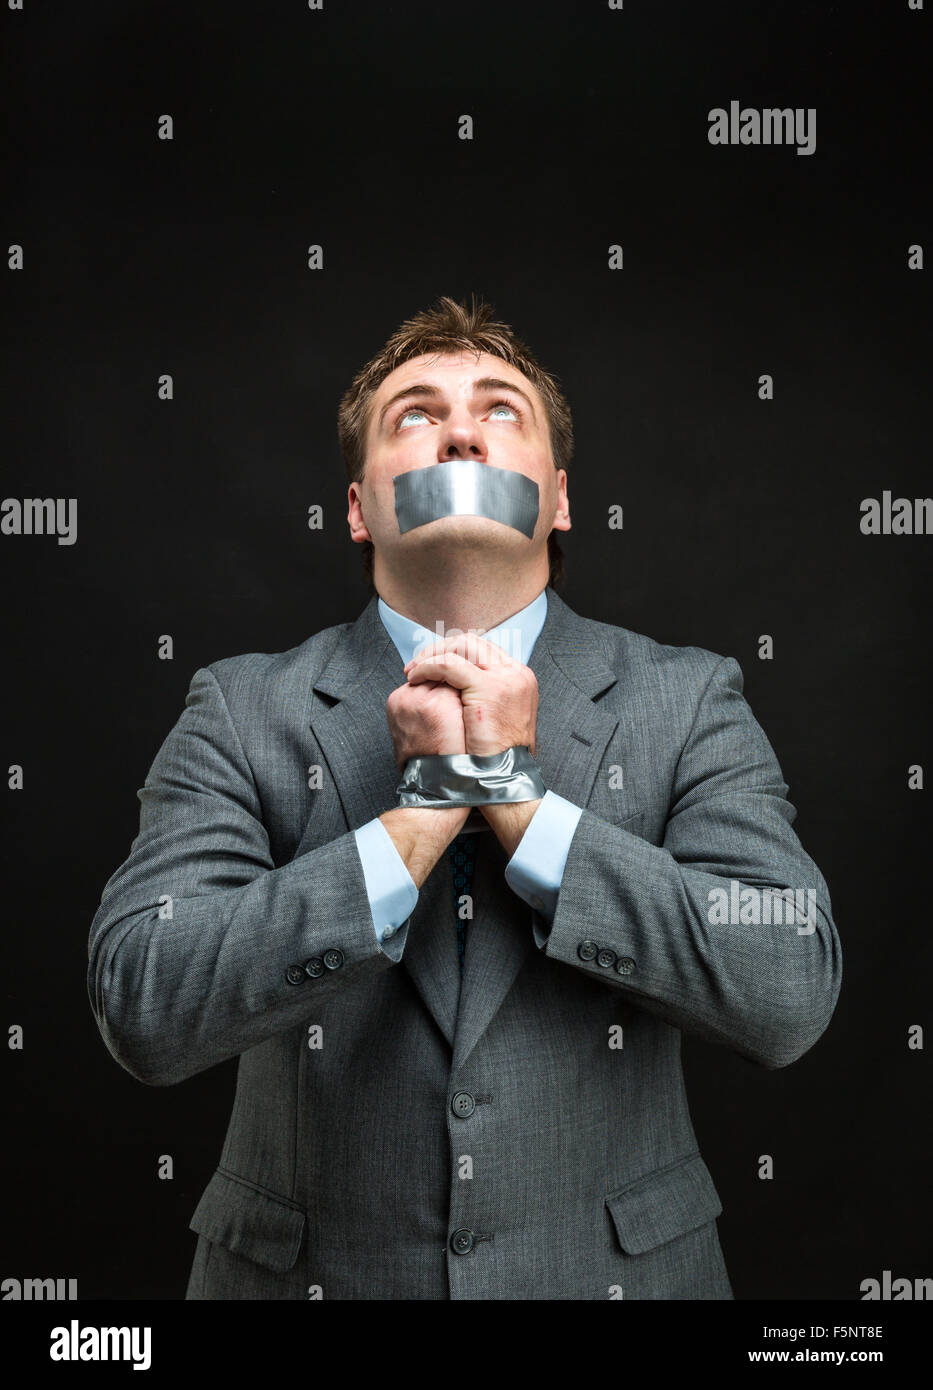 Man with mouth and hands covered by masking tape preventing speech, isolated on black - Stock Image